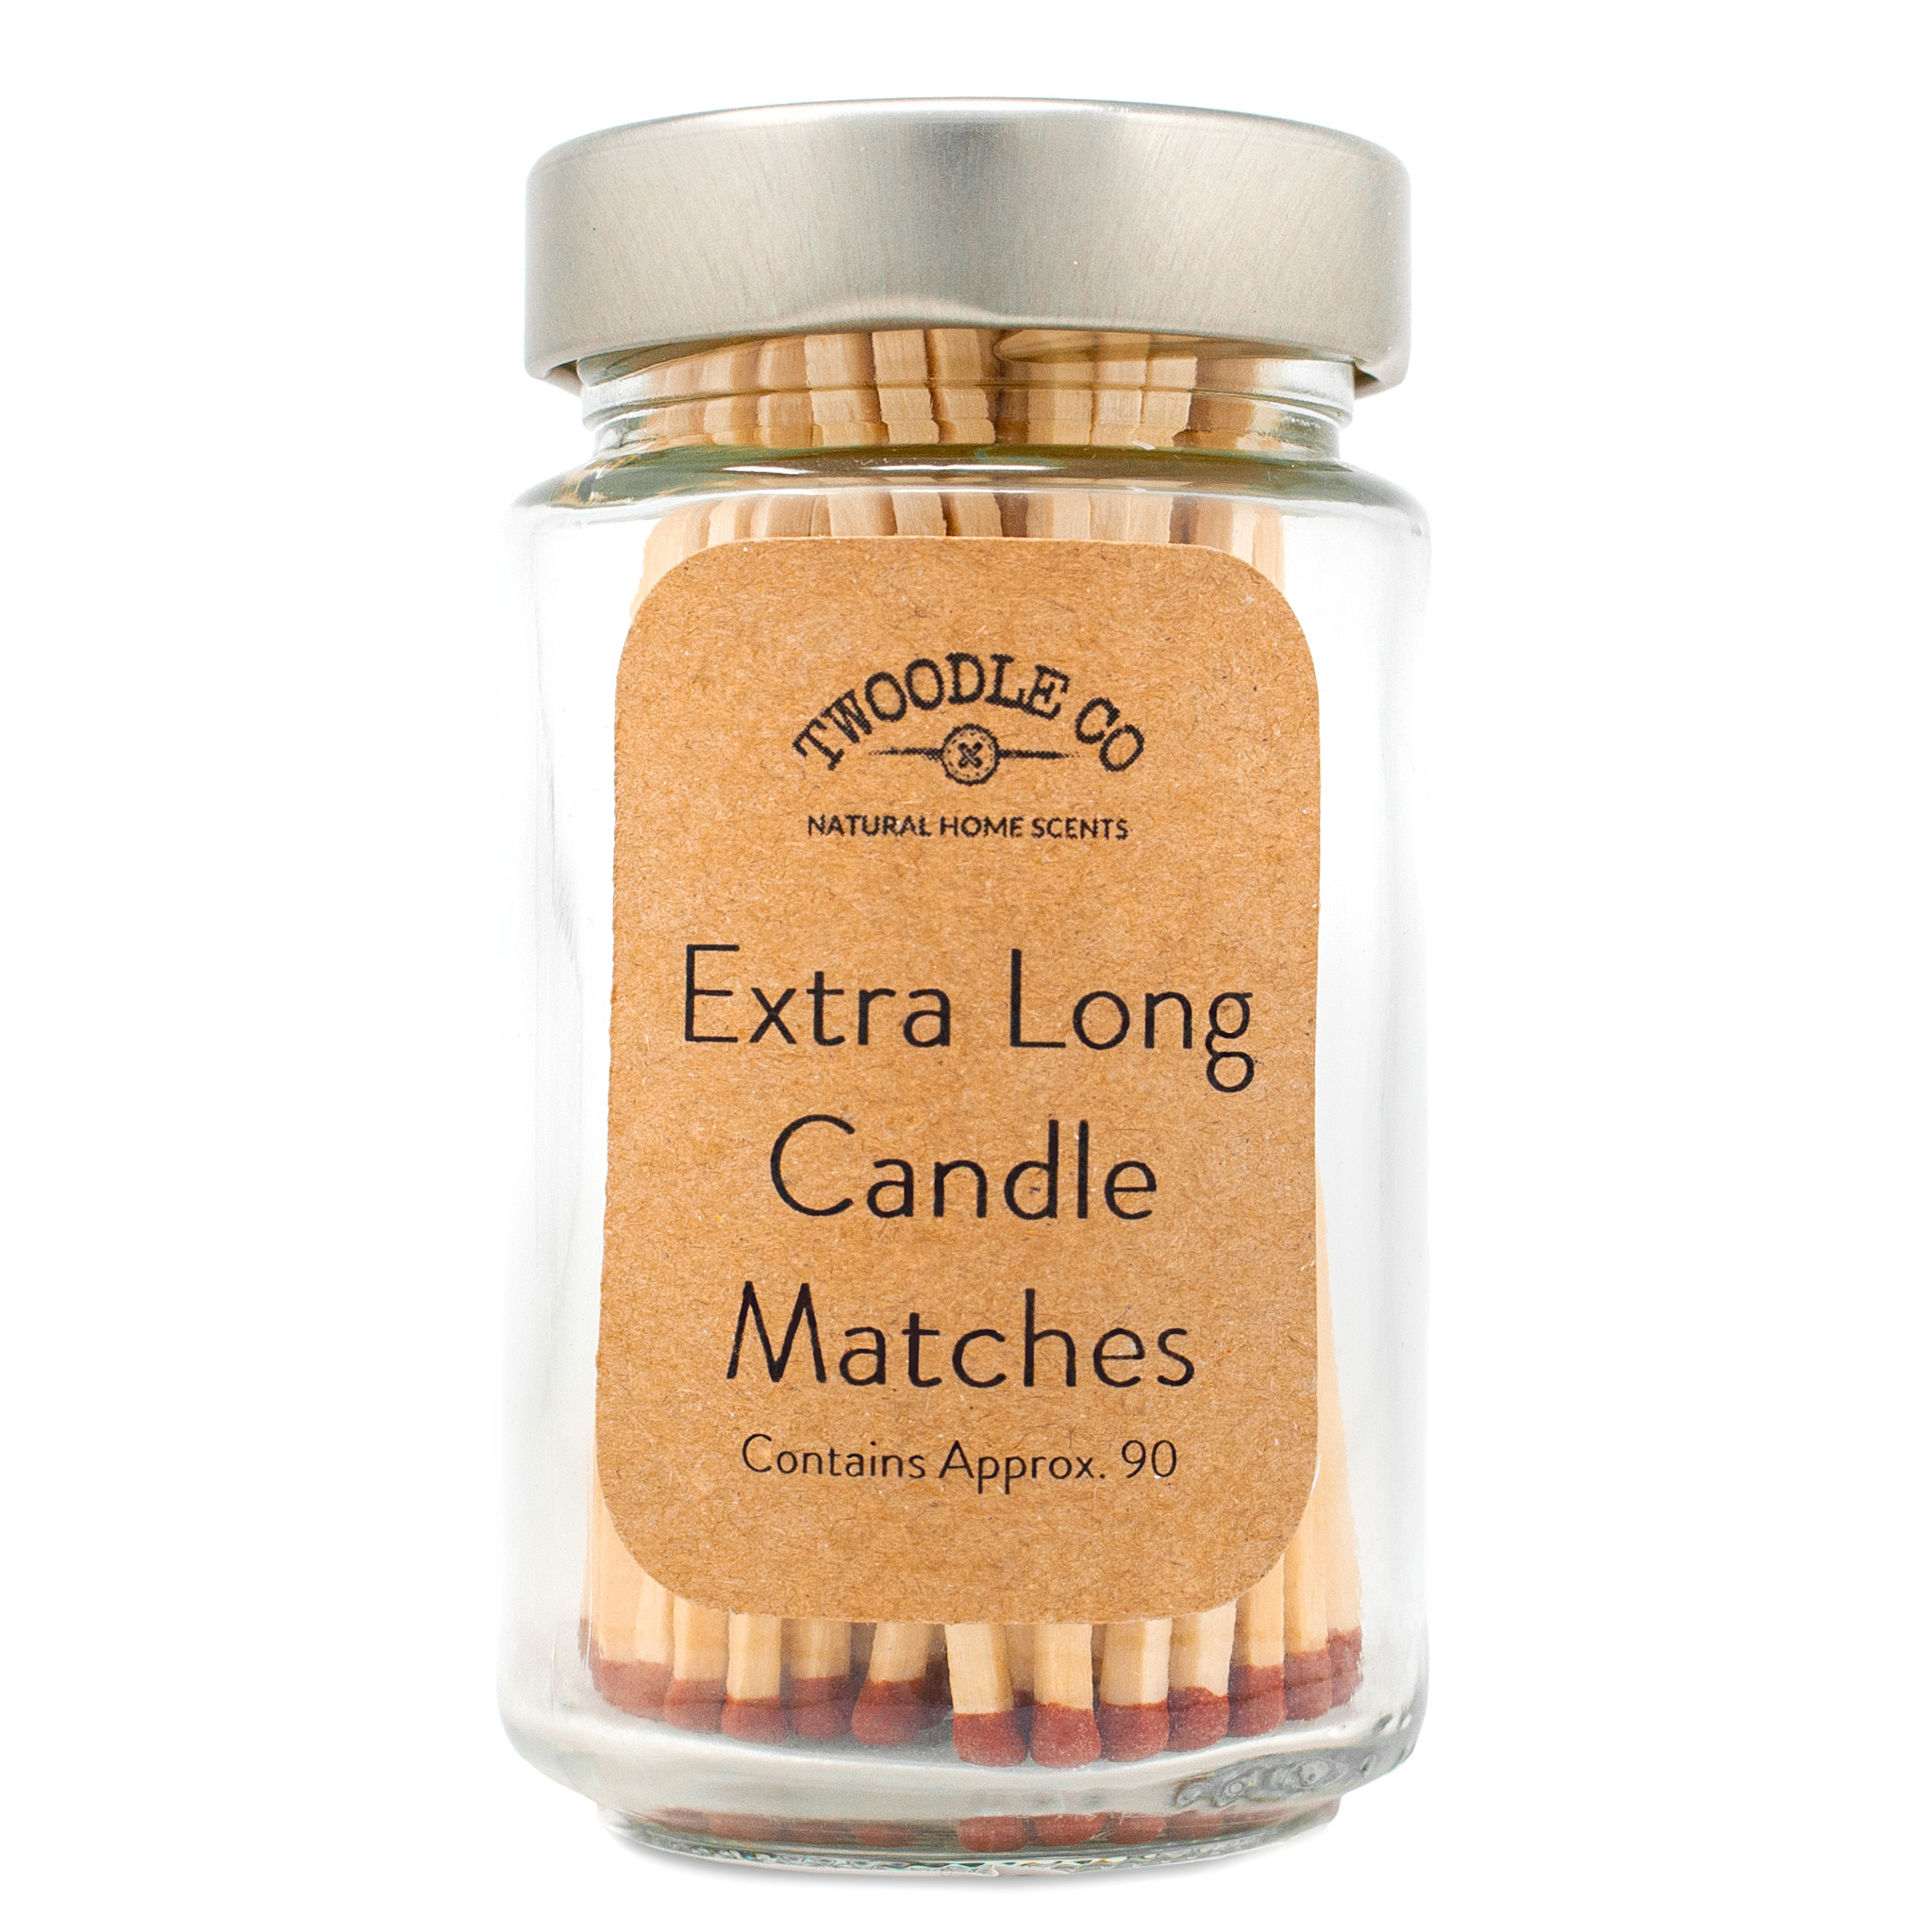 Extra long candle matches silver lid by Twoodle Co Natural Home Scents